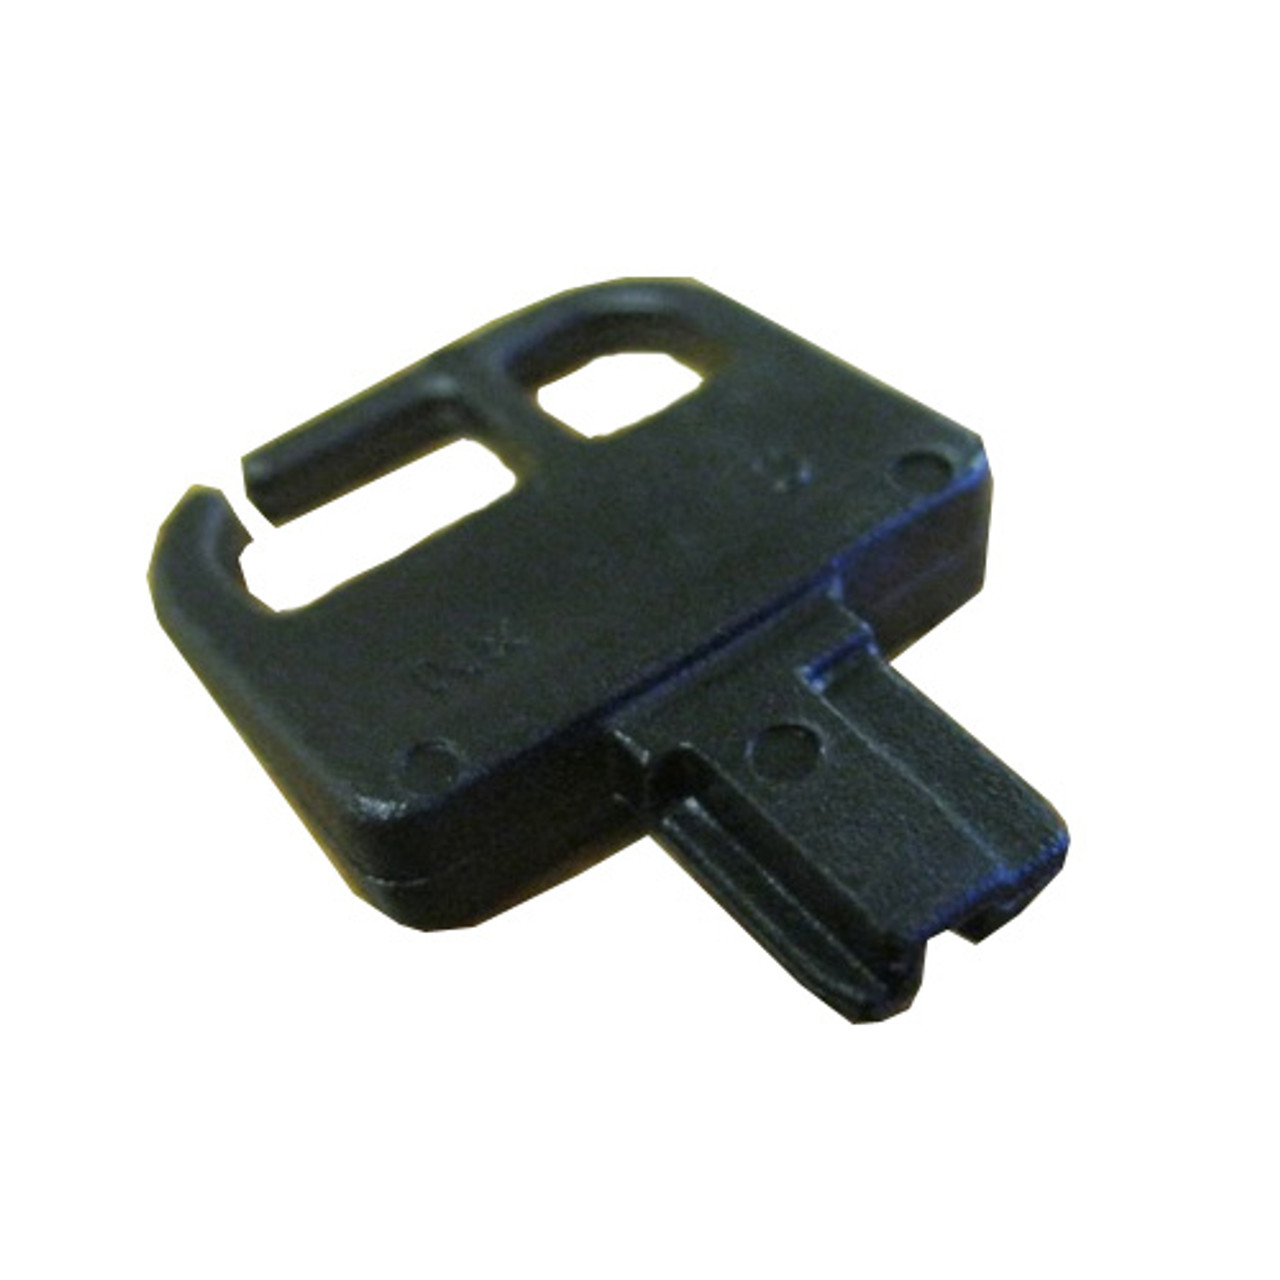 Master Spa - X900104 - Black Master Cover Lock Key - Front View